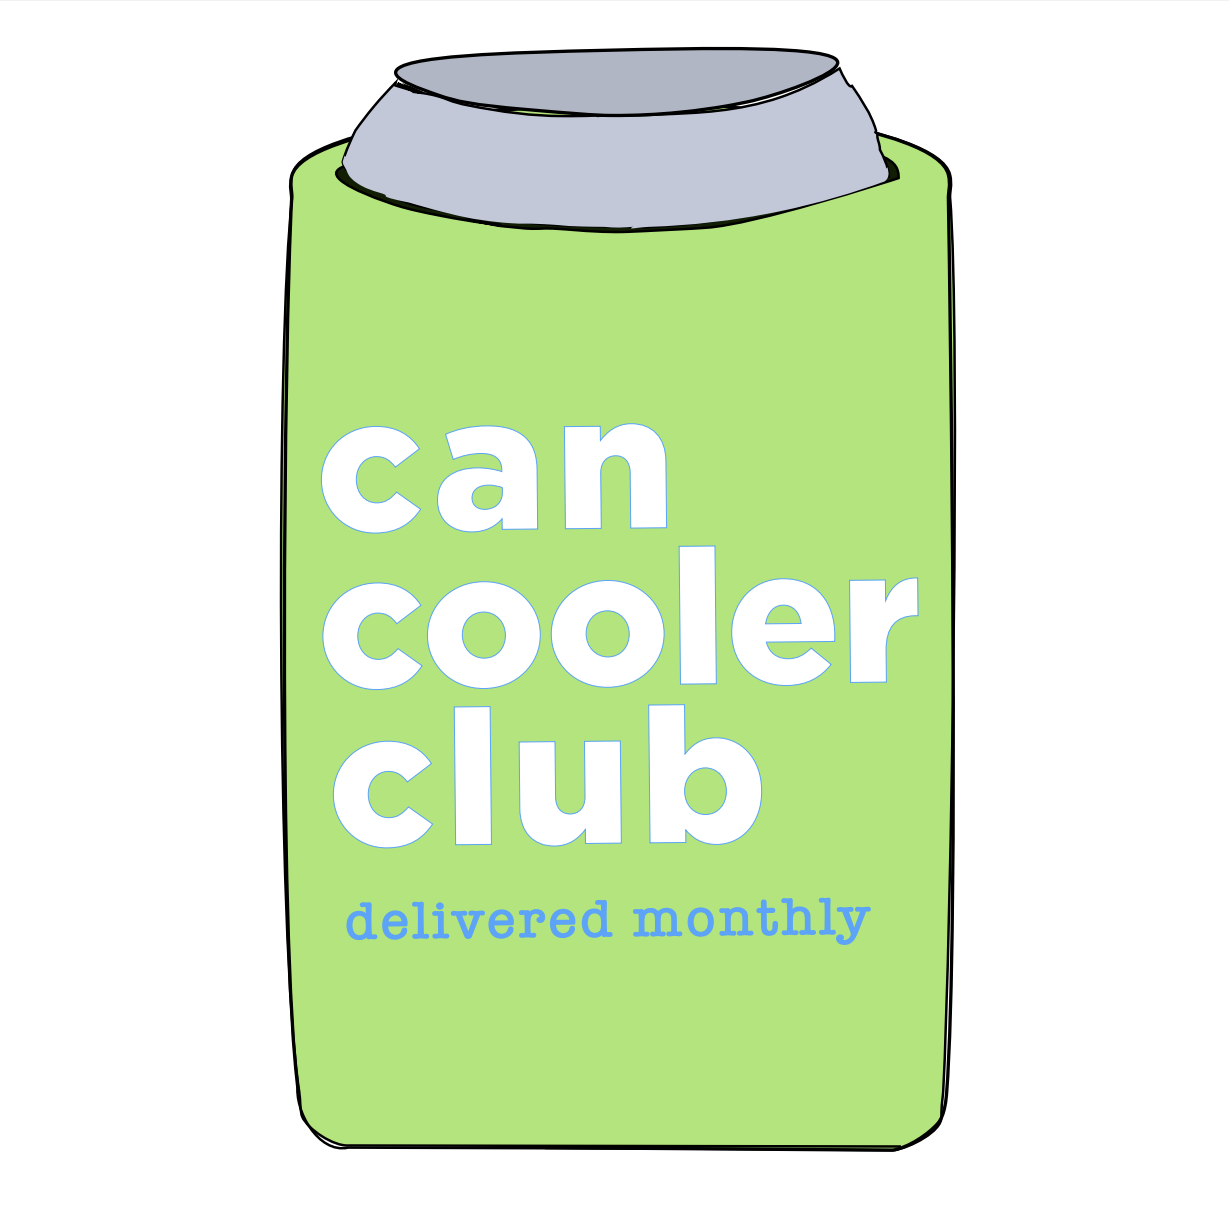 can cooler club logo.jpeg